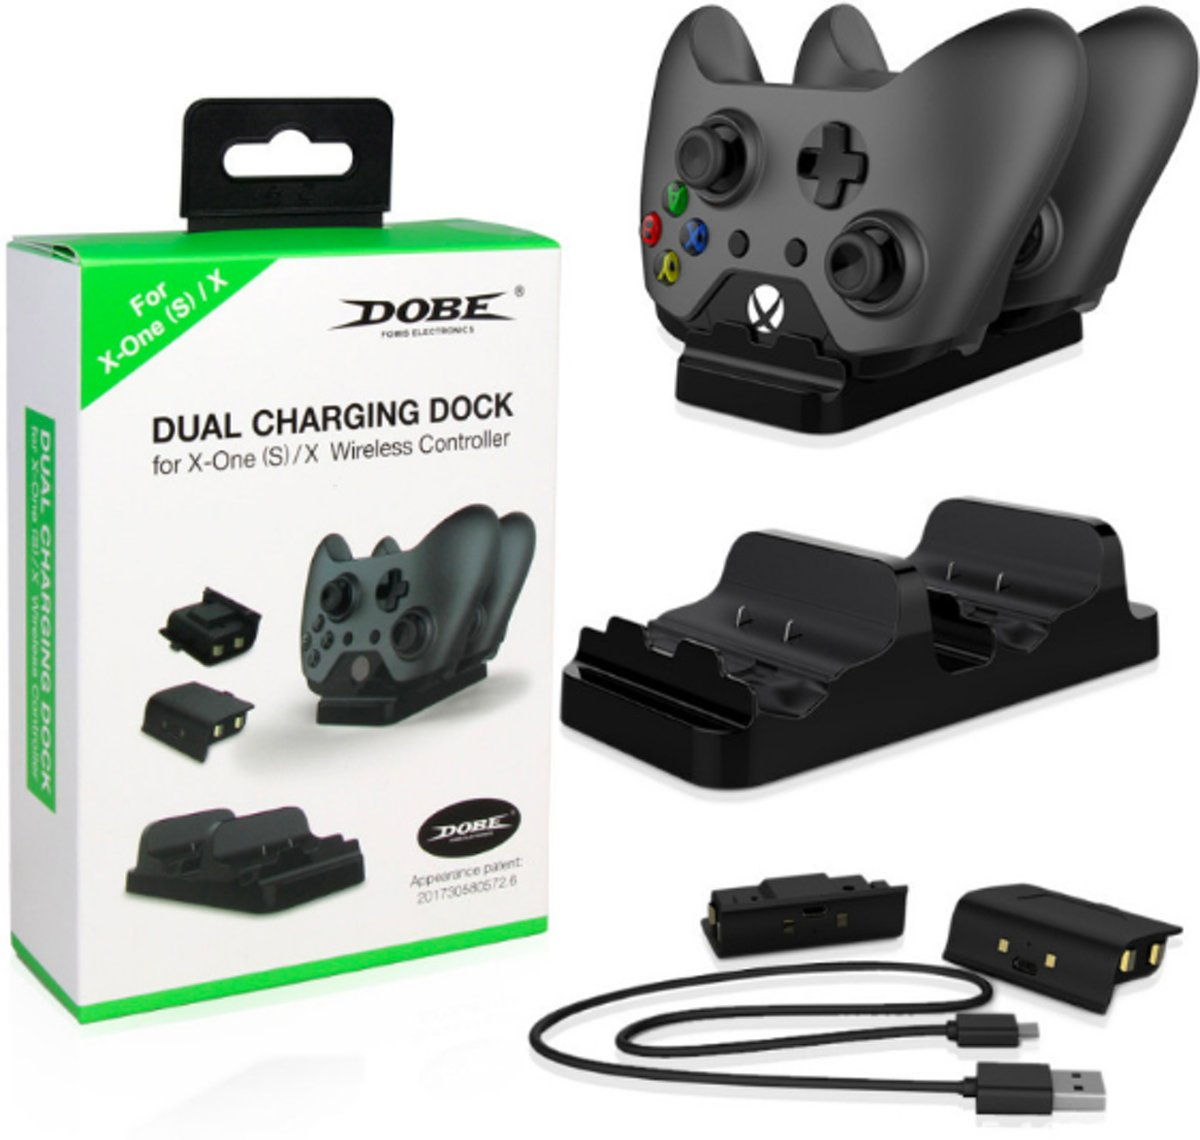 Xbox One S/X Controller charging dock - Dual Battery Pack Accu Controller Dock Charger Oplaad Station - LED USB Dubbel Docking Op Laadkabel- Laadstation